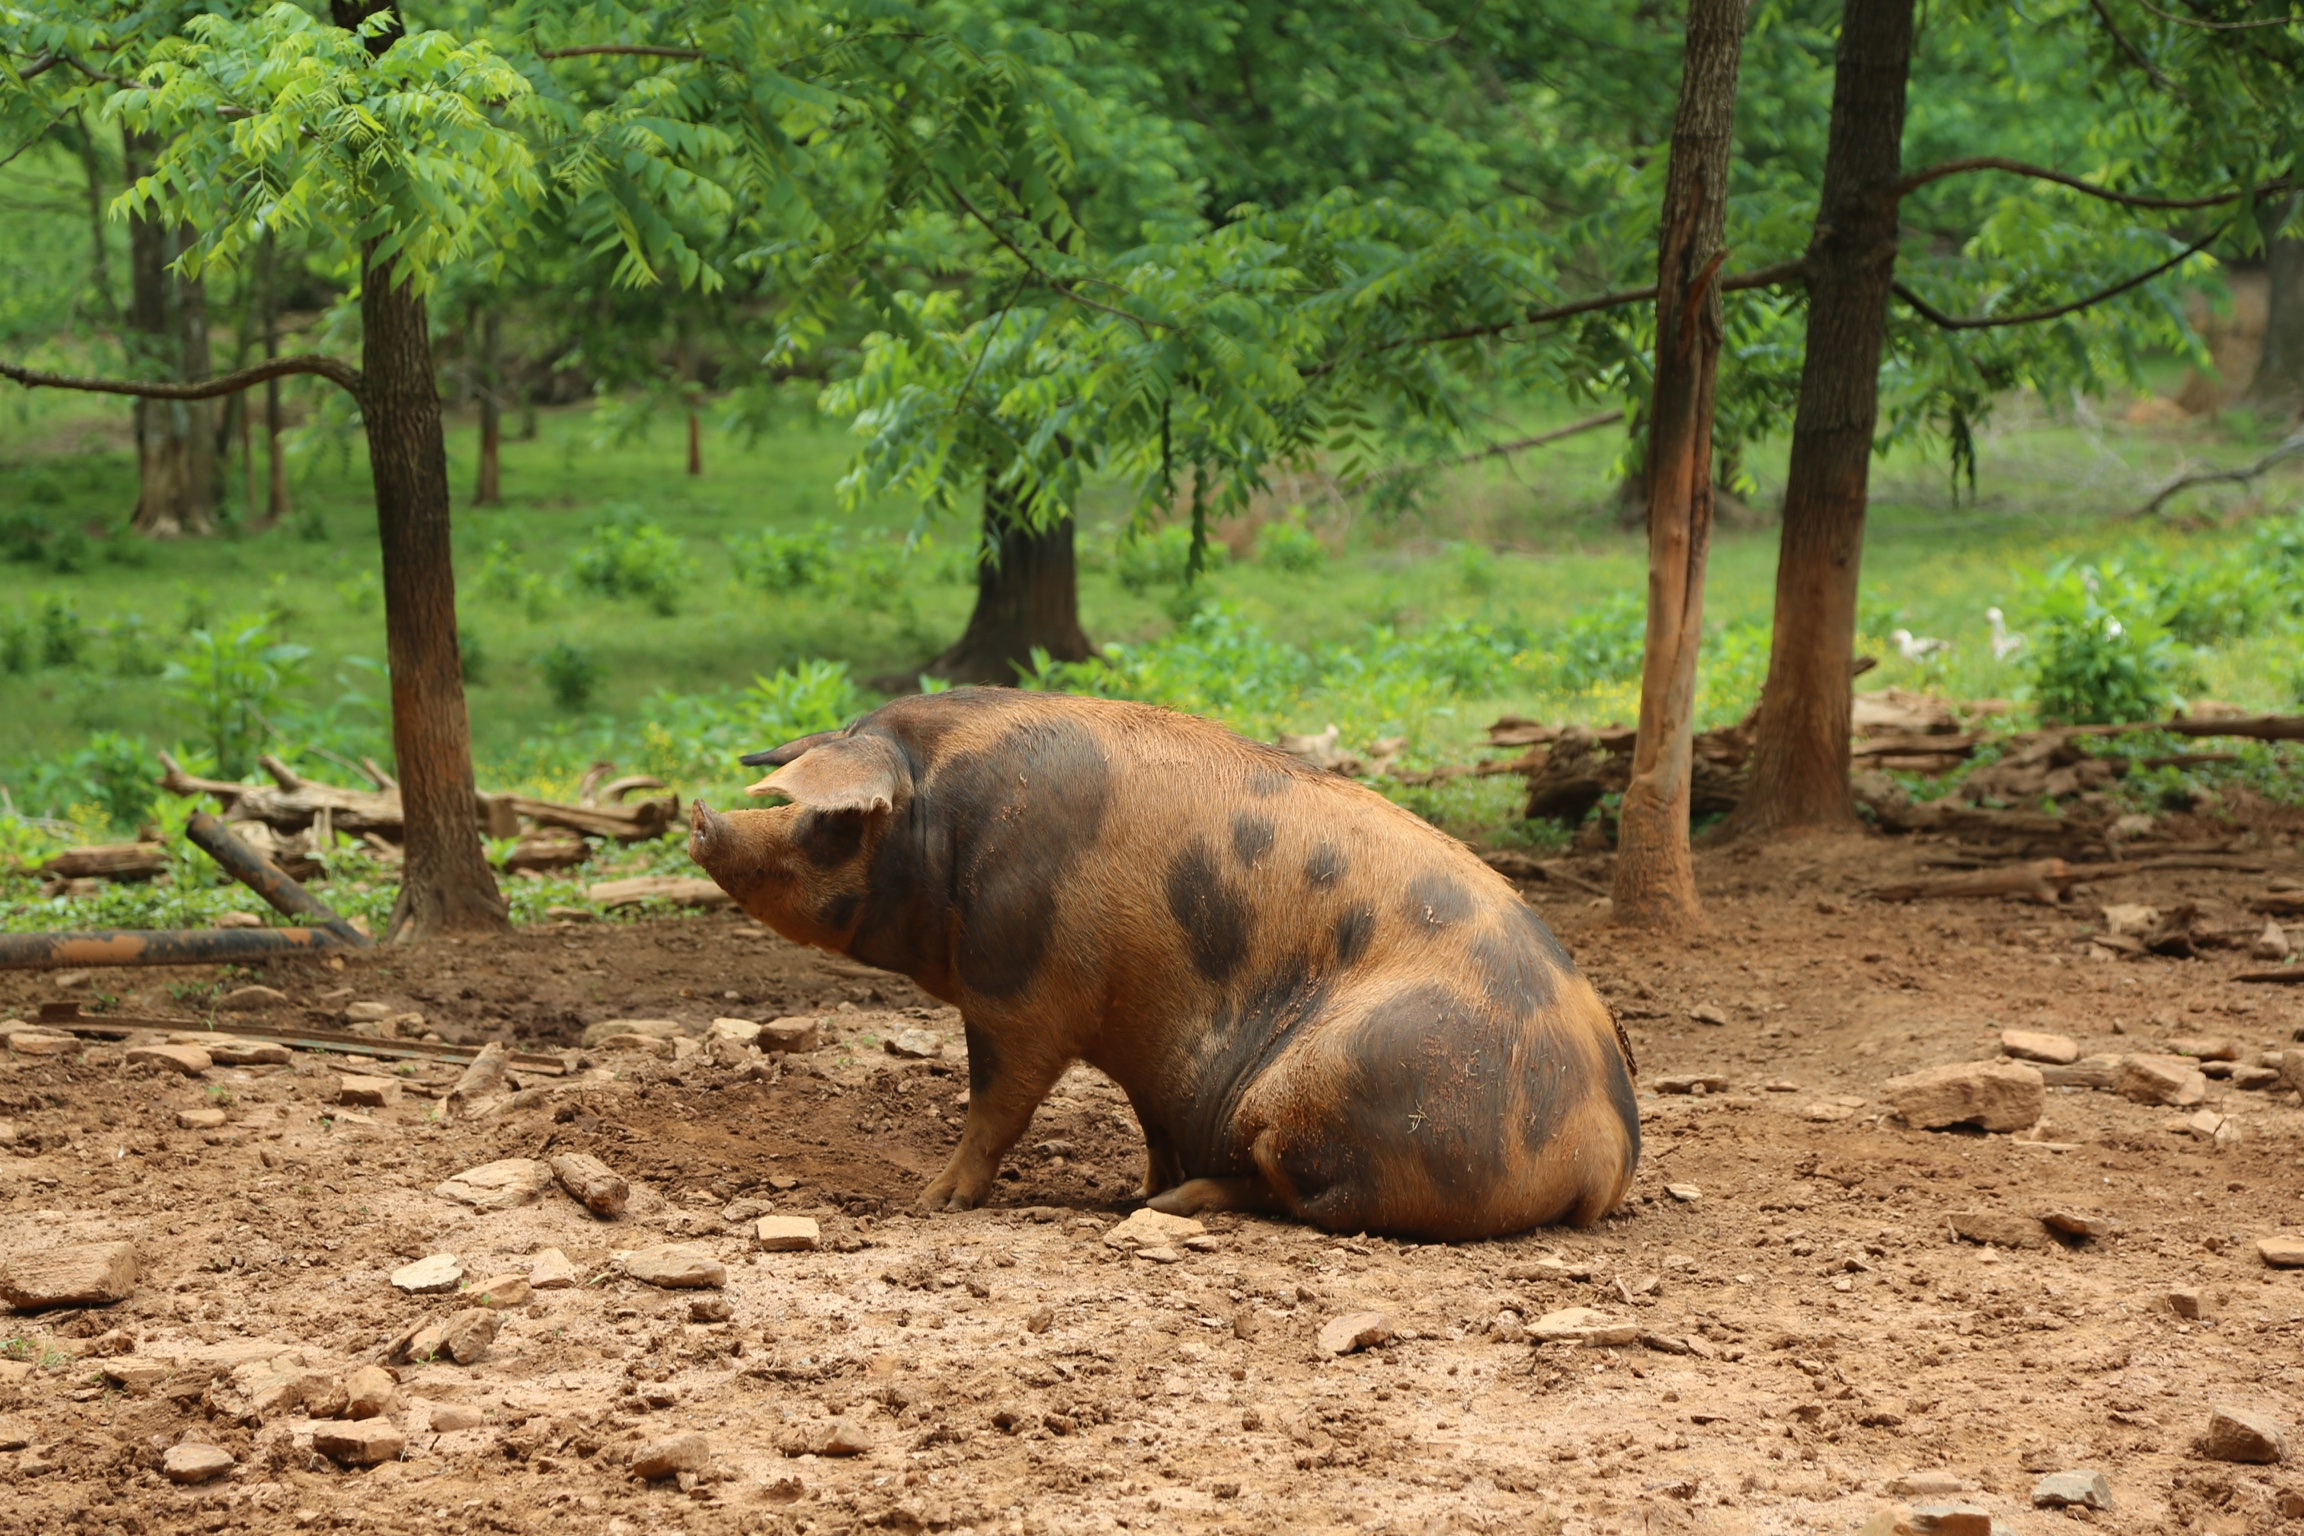 A far cry from the pigs that end up as pork in the grocery store.